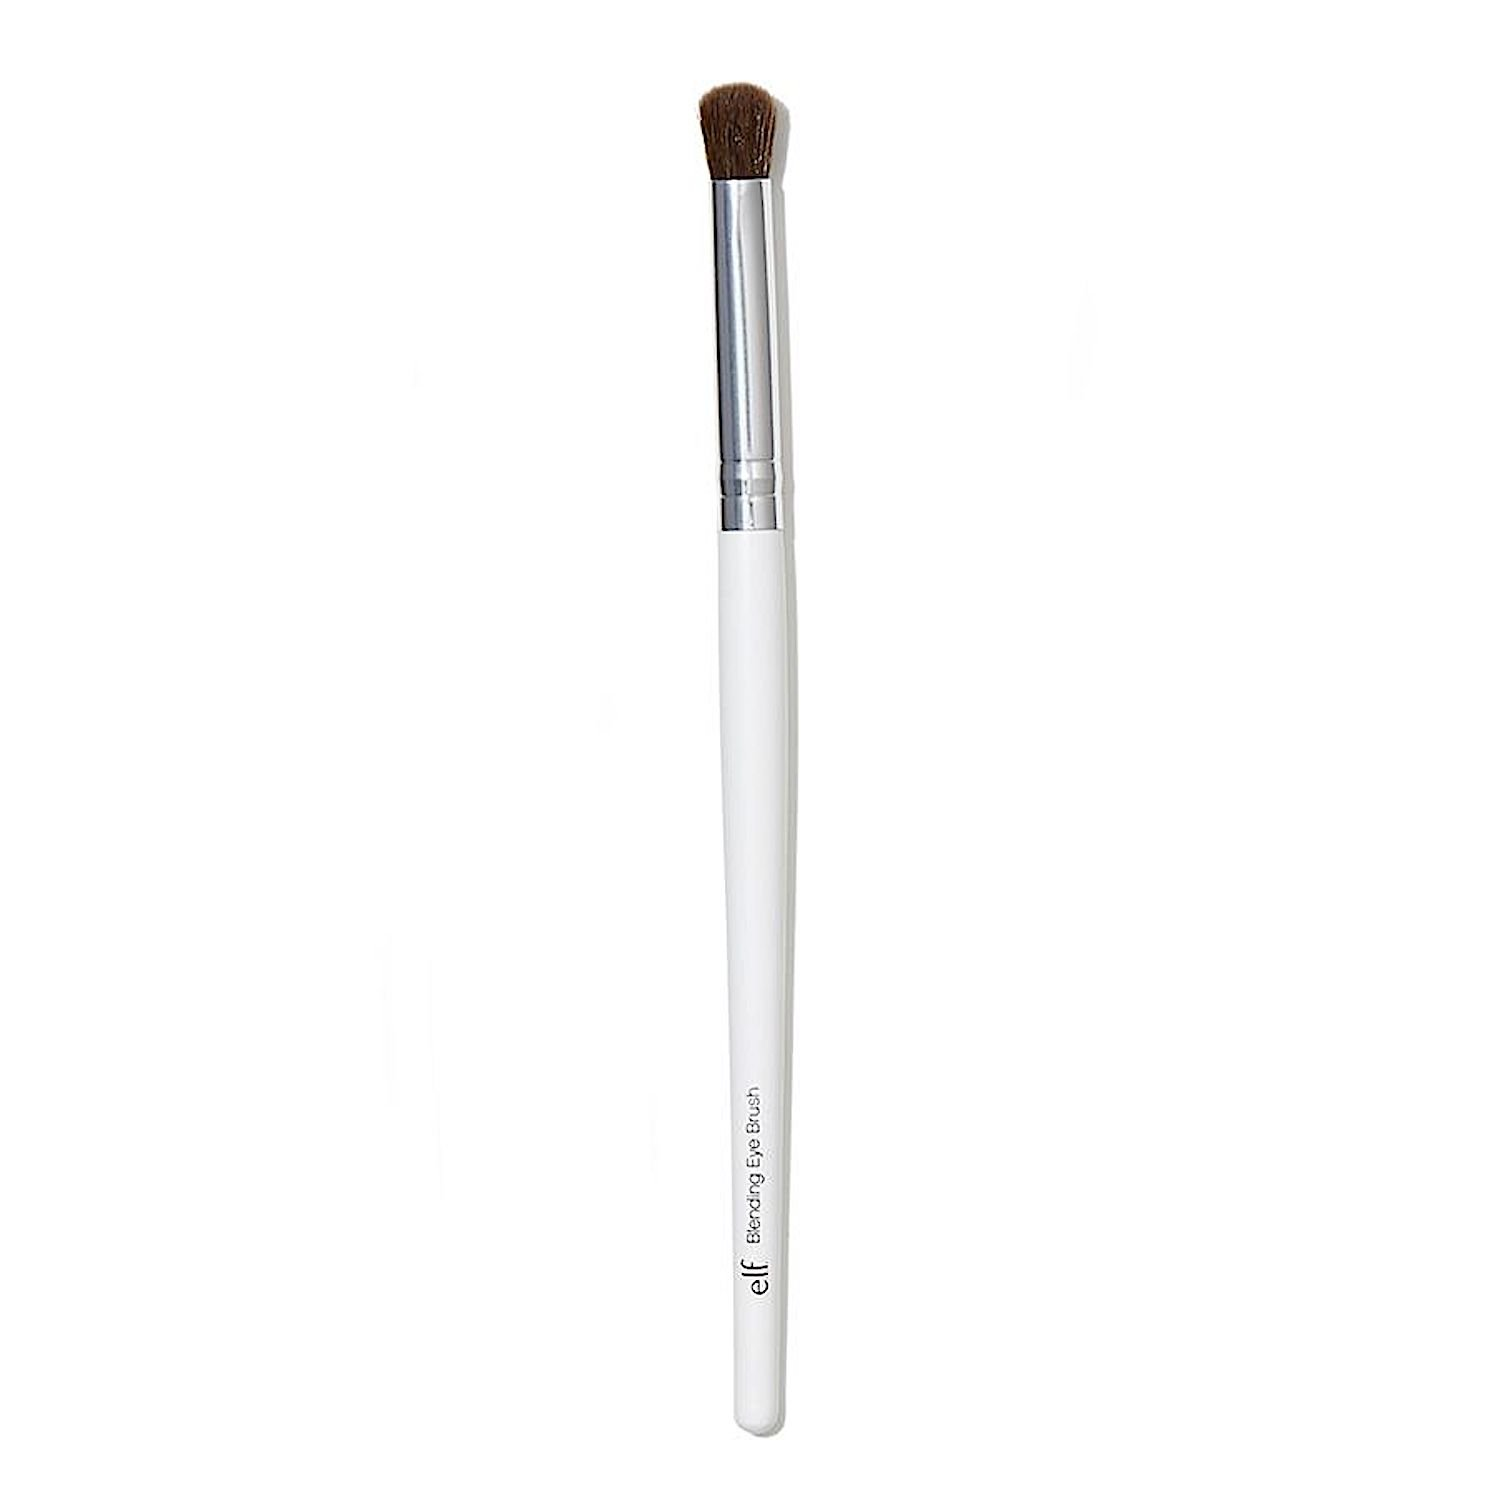 e.l.f. Cosmetics Blending Eye Brush